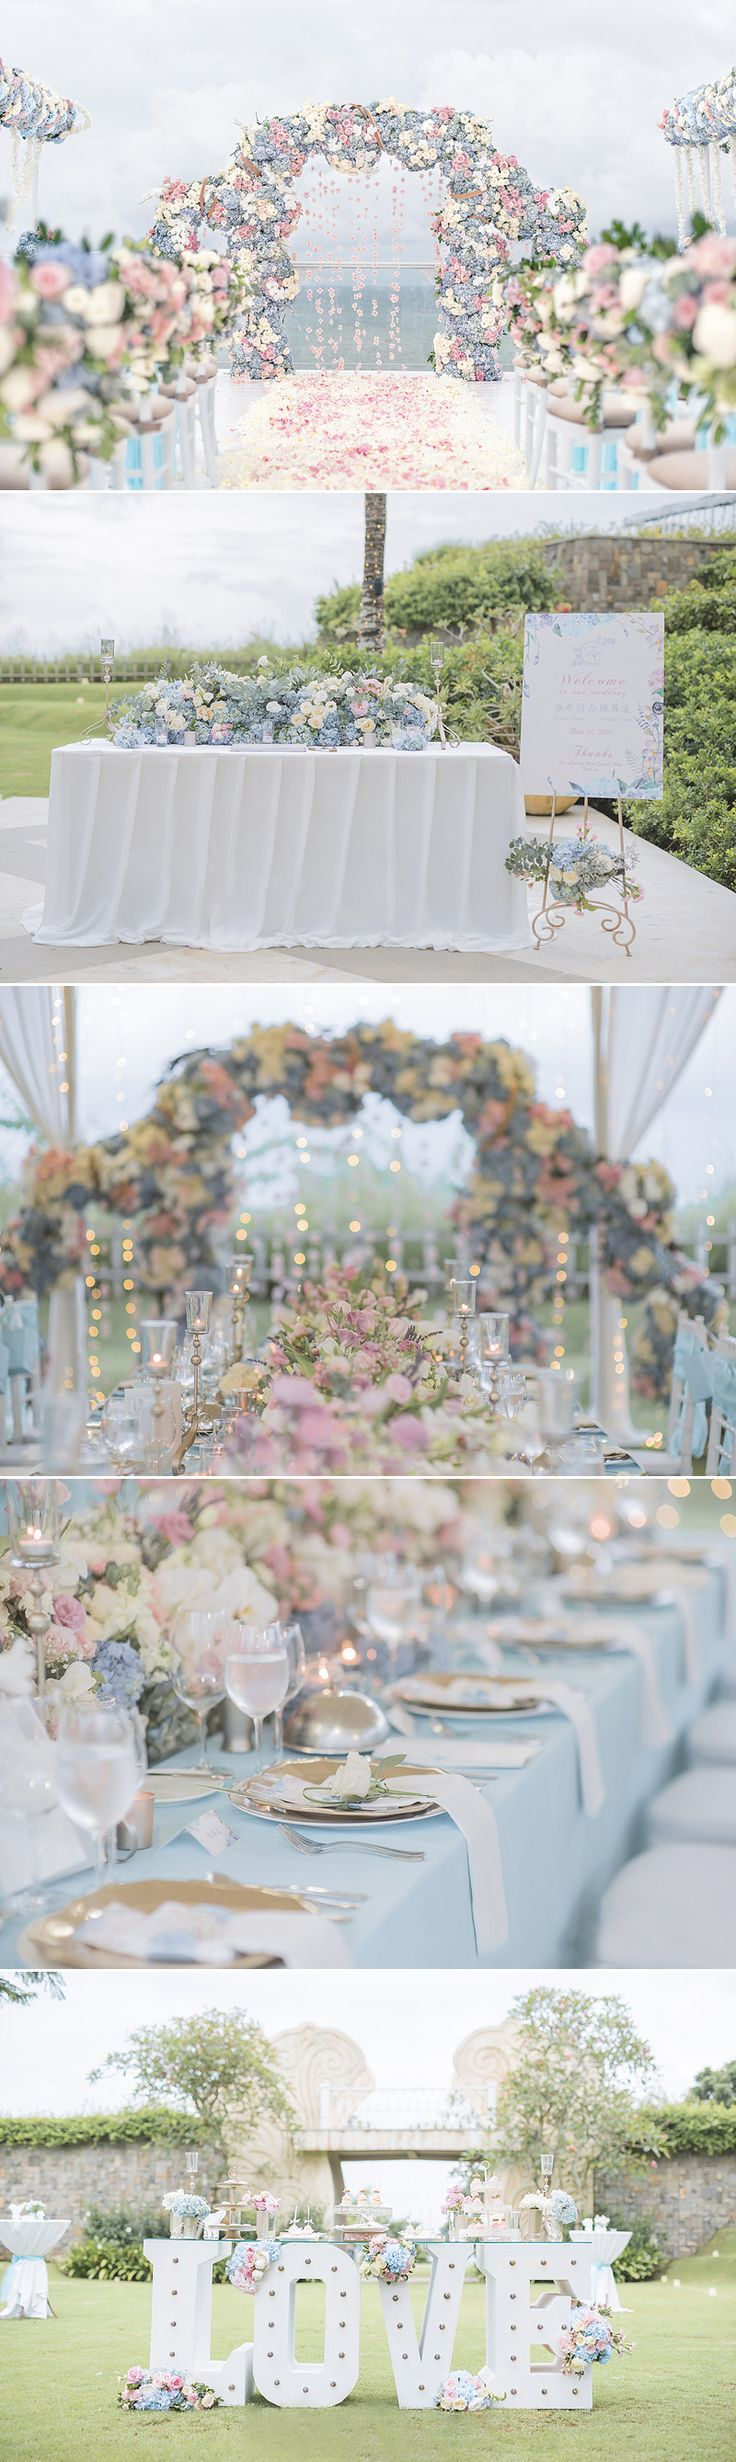 7 Incredibly Magical Themes For Spring Fairytale Weddings!